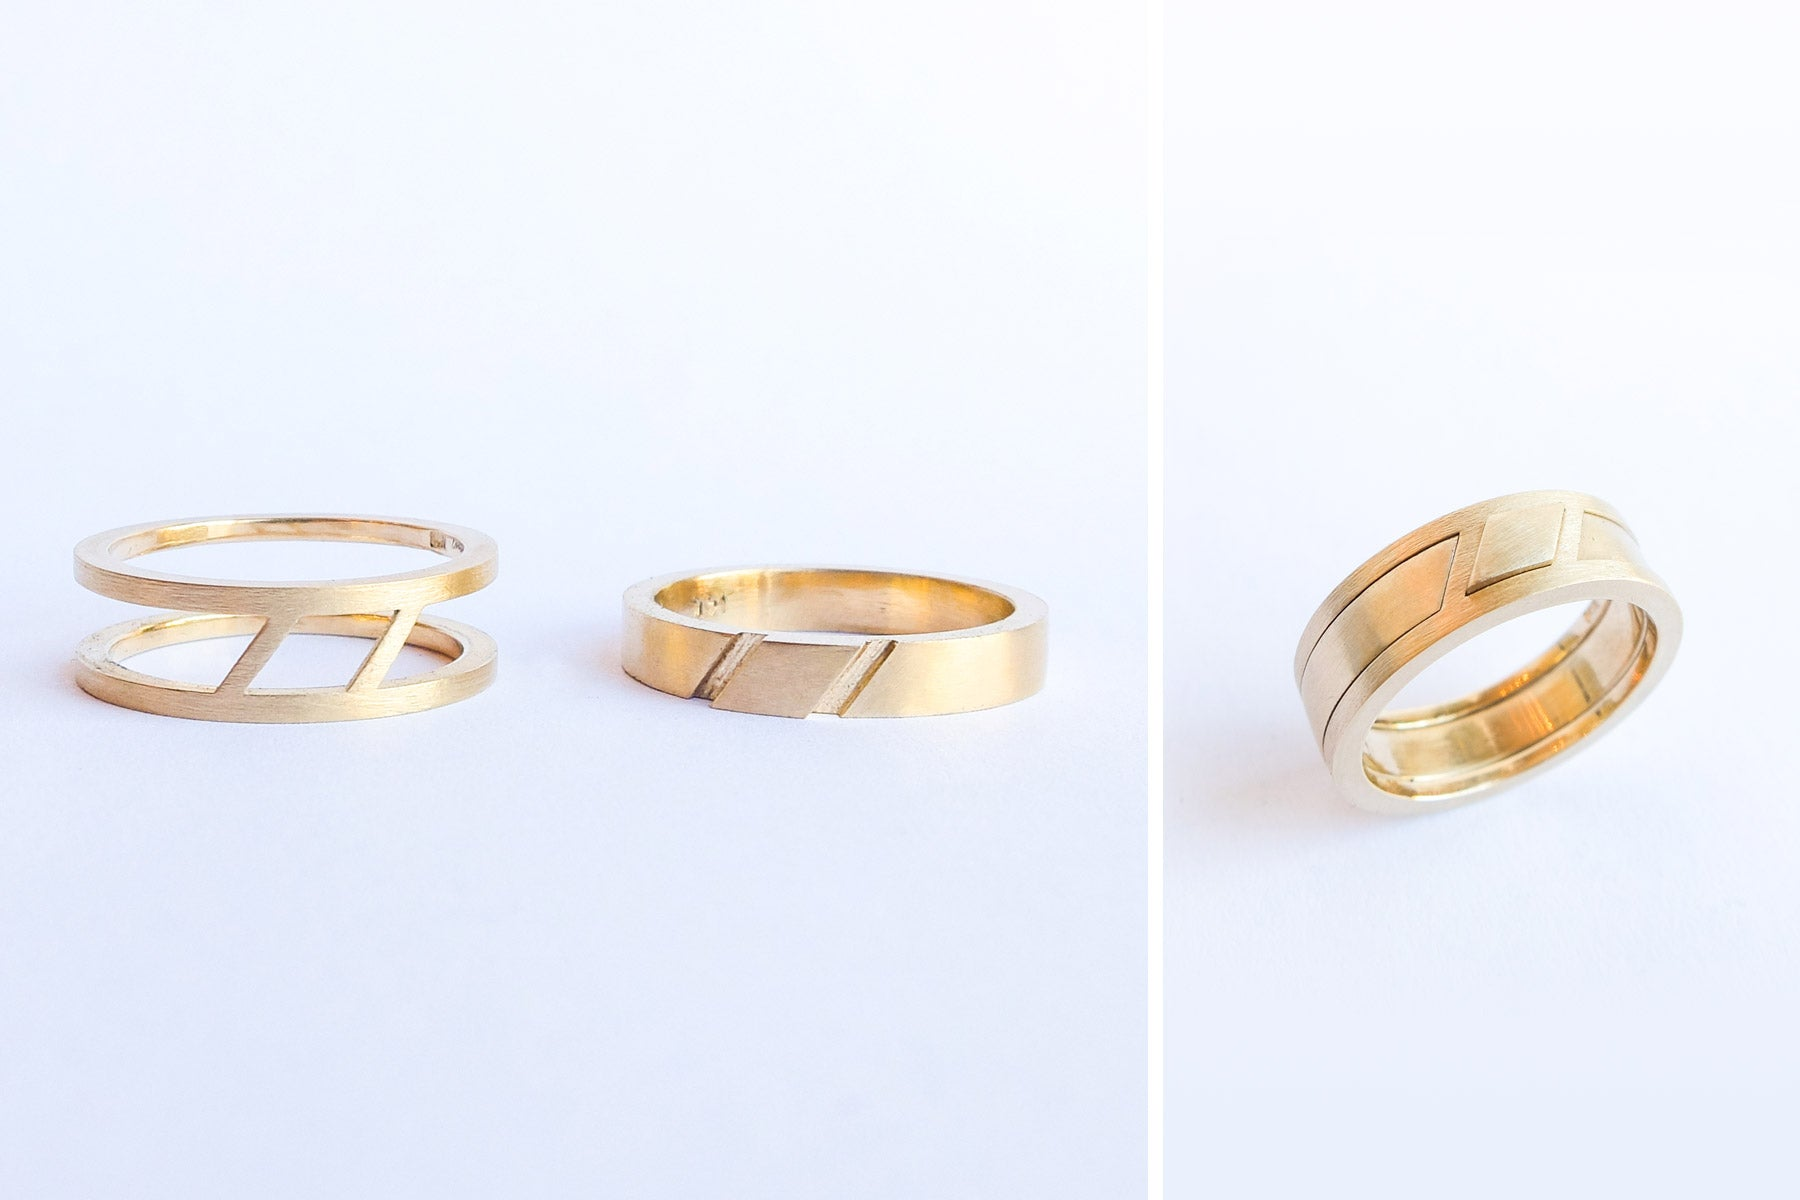 14k gold two part mens unisex wedding bands that can be put together to form one ring